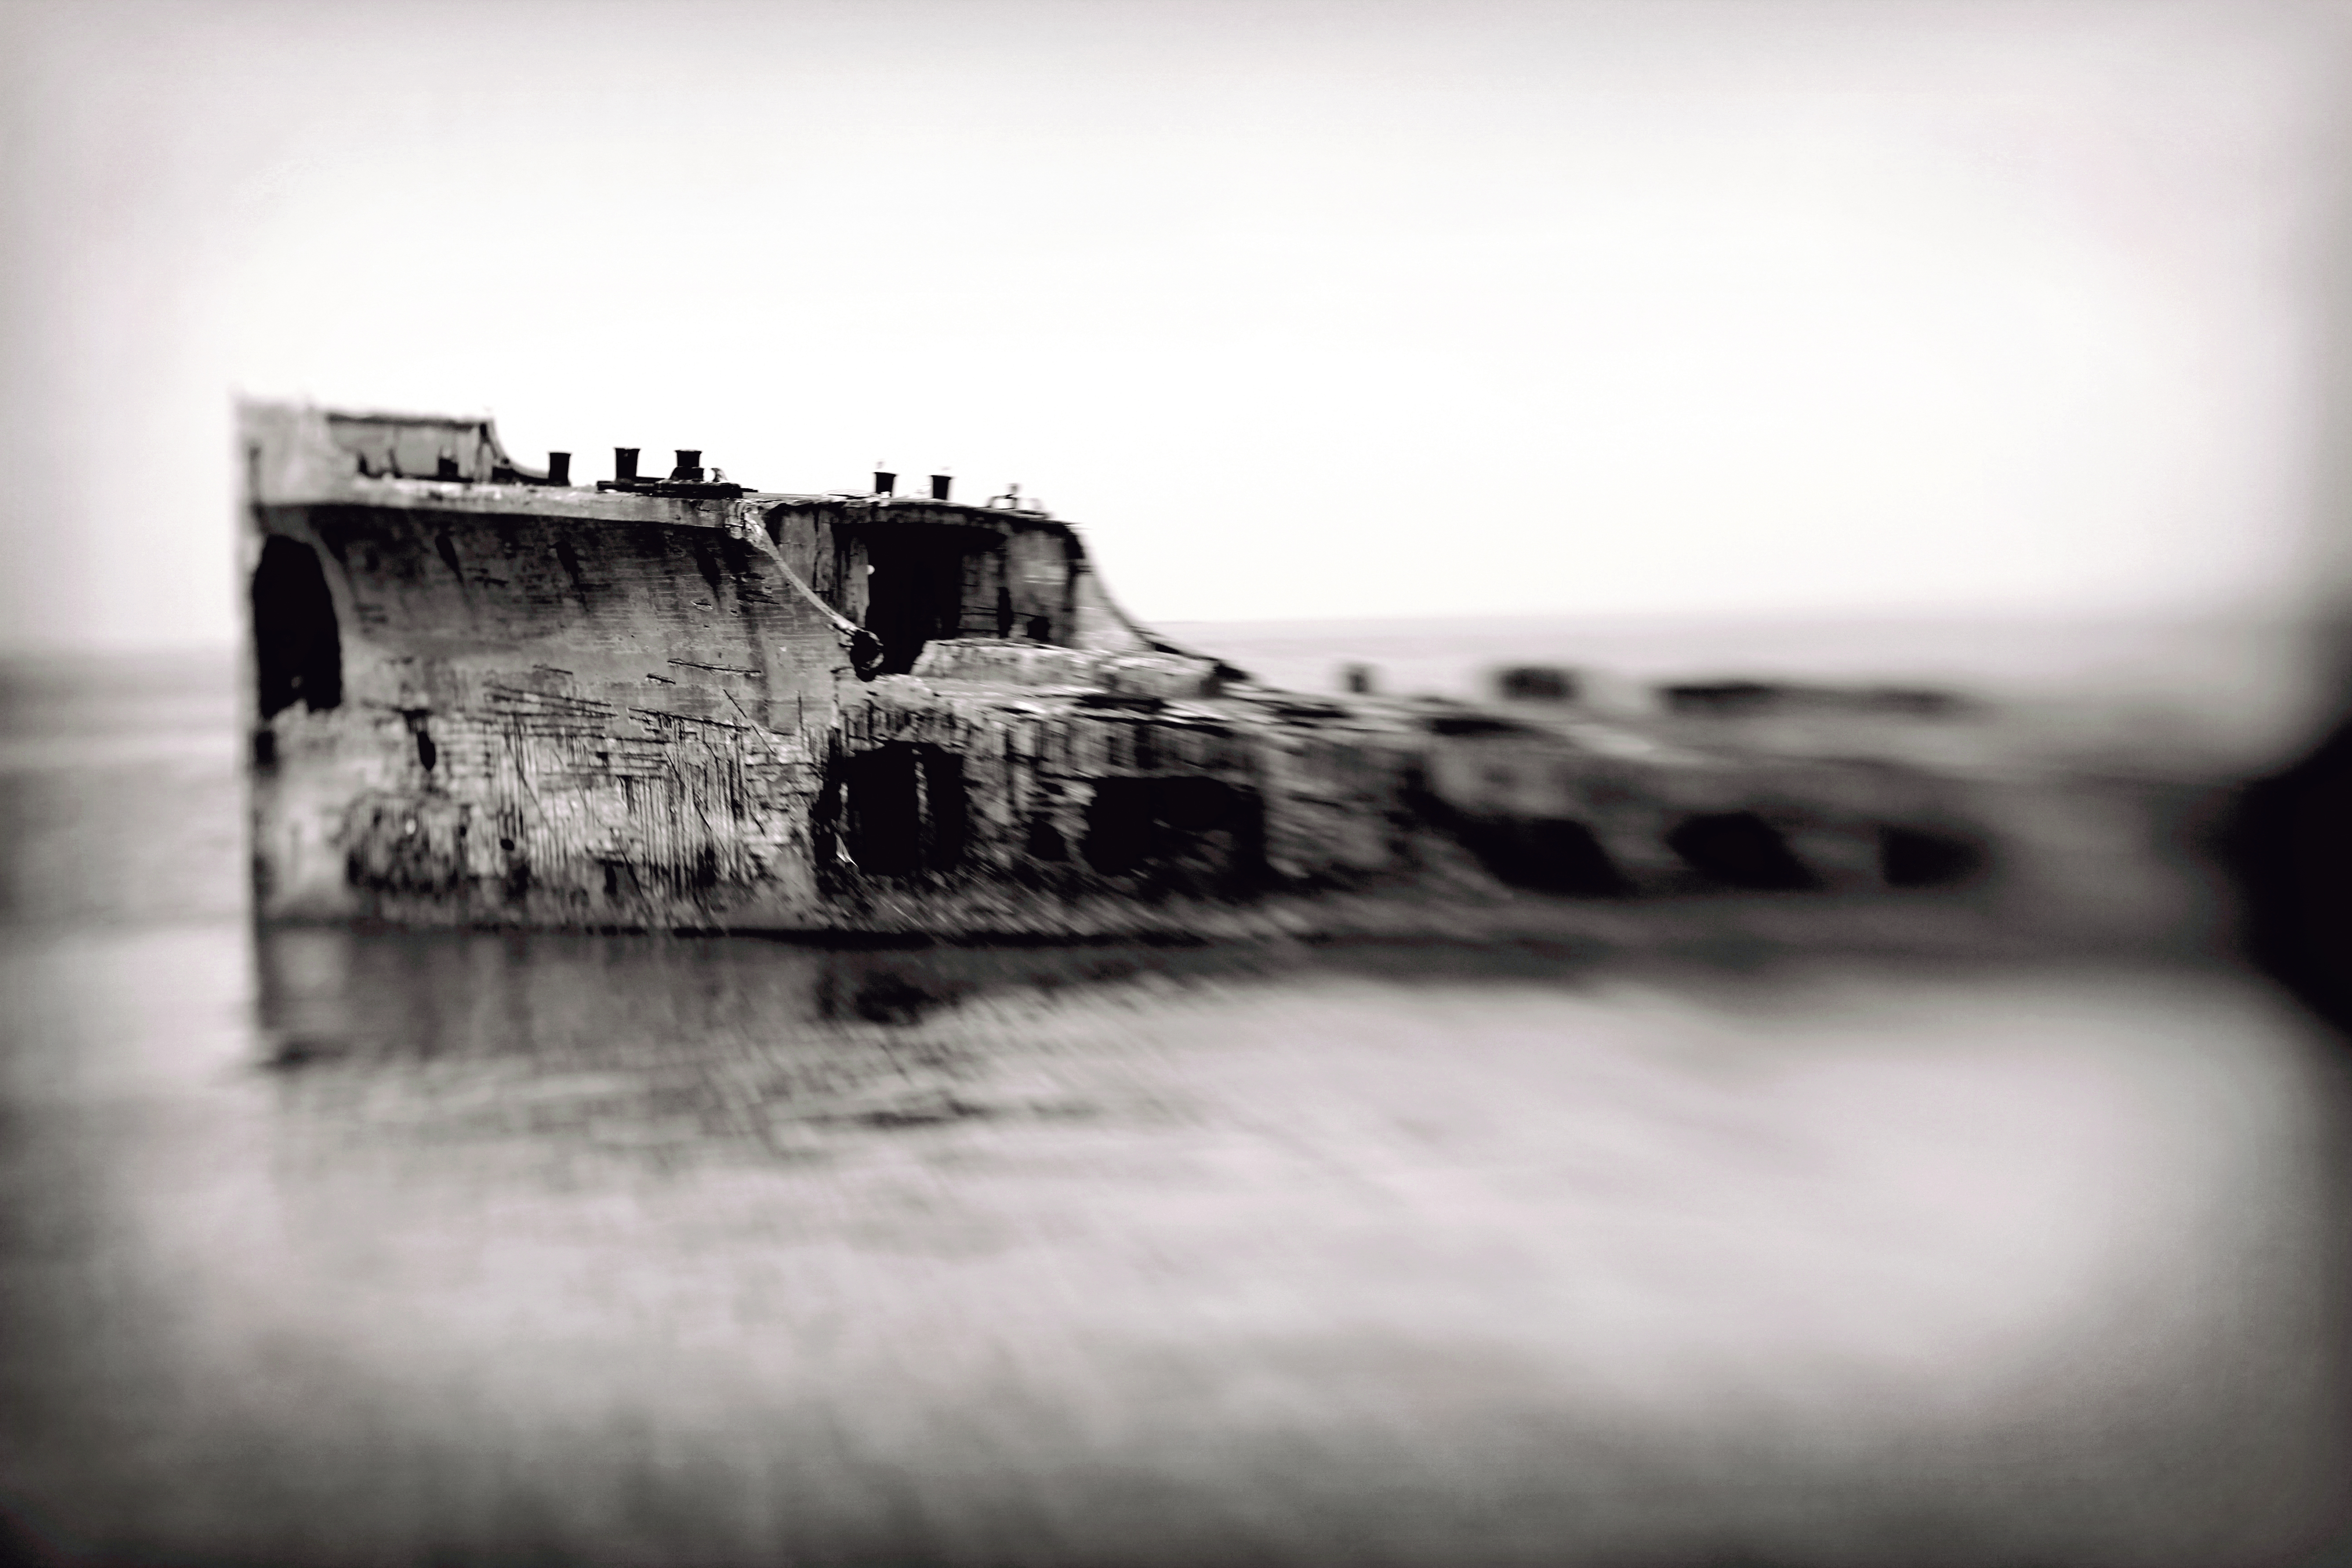 Concrete Ship, 2012